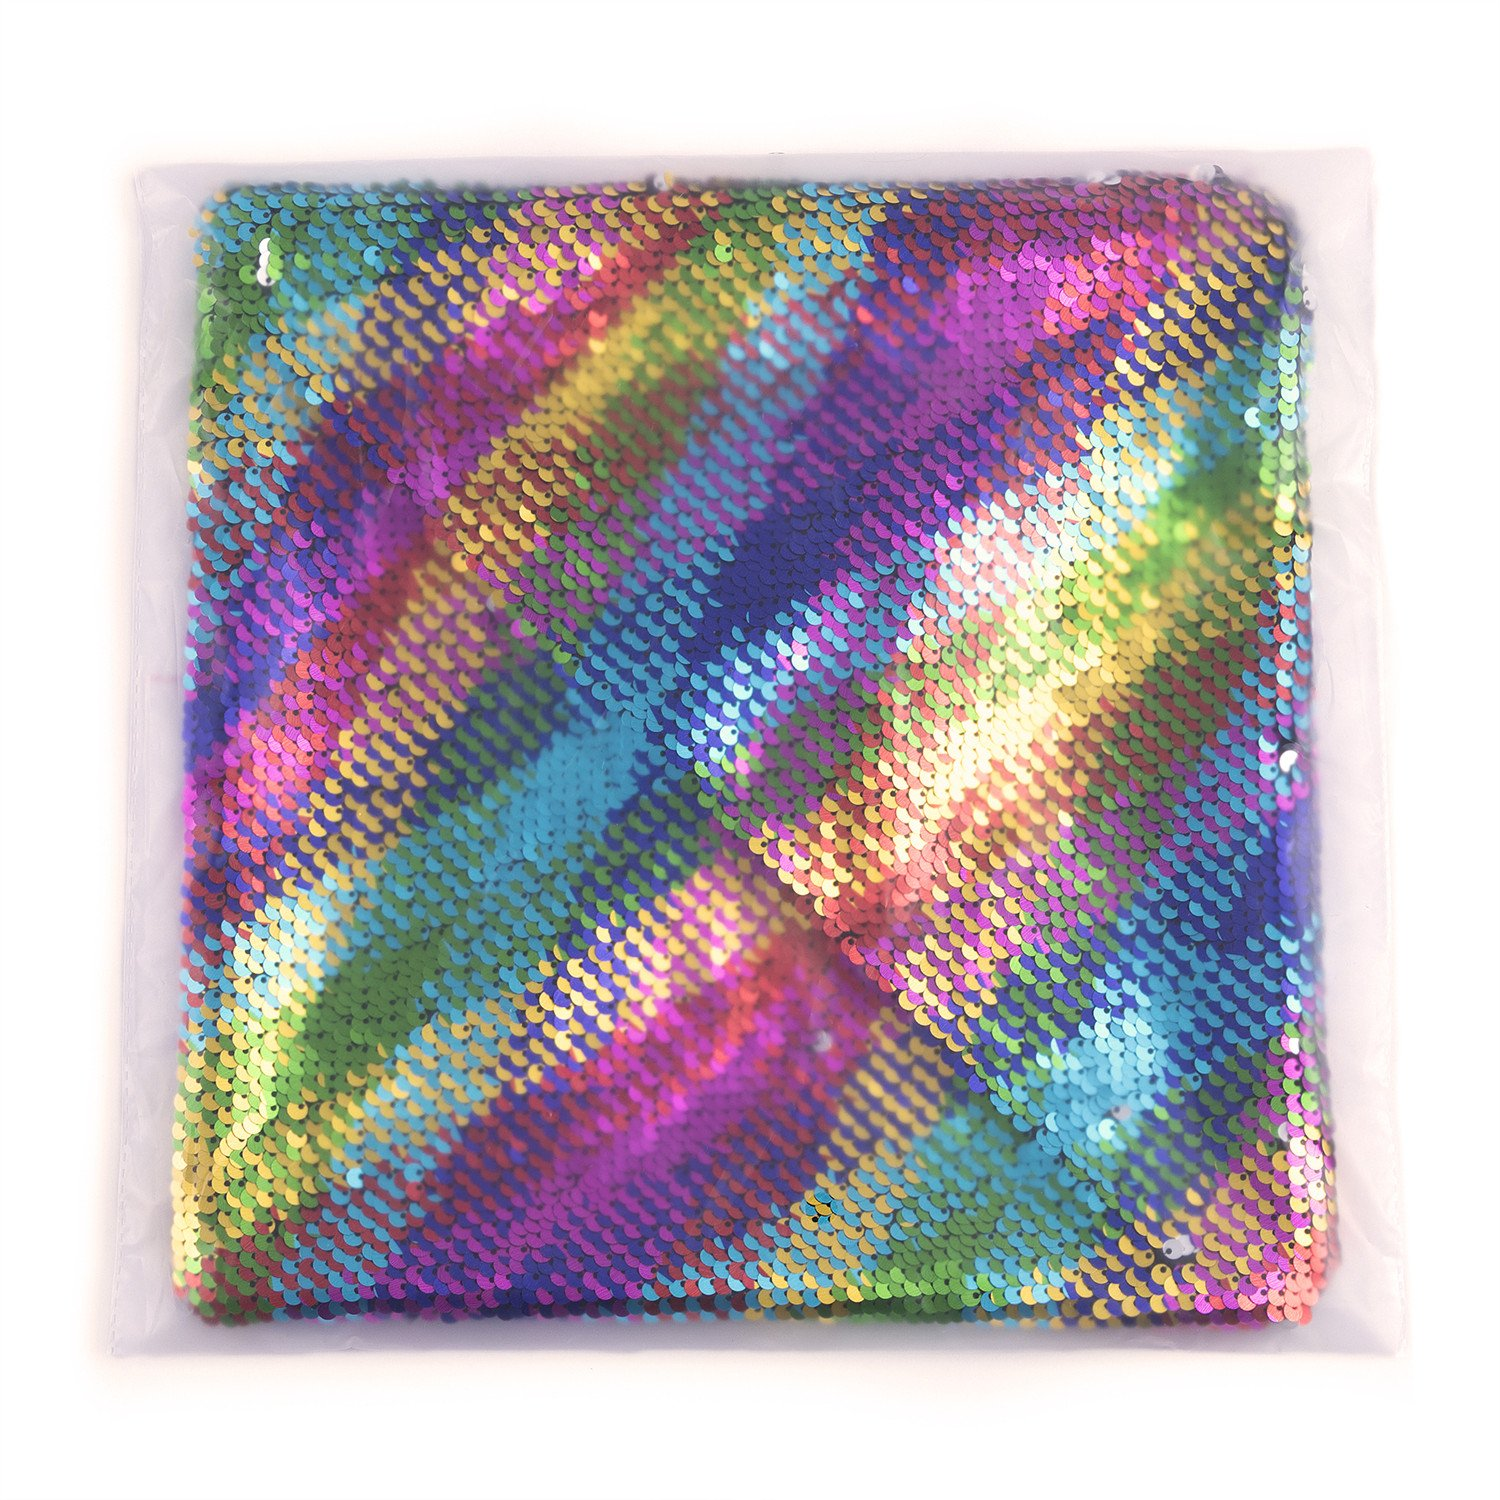 LAGHCAT Reversible Cushion Covers Sequins Mermaid Pillow Cases with magic mermaid sequin (Colorful and silver)